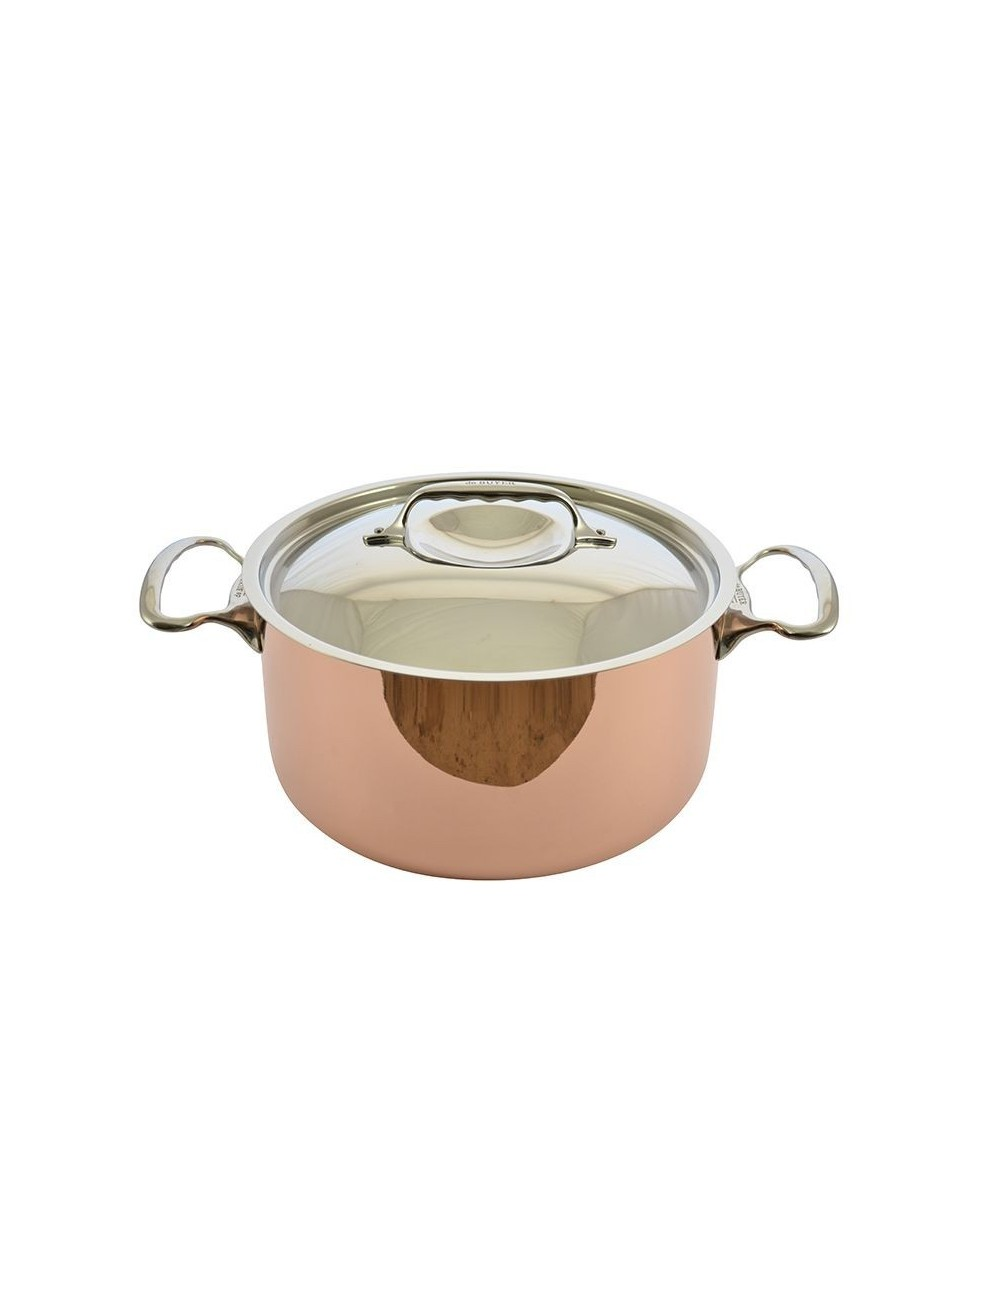 RAGOUT CUIVRE INDUCTION COUVERCLE INOX